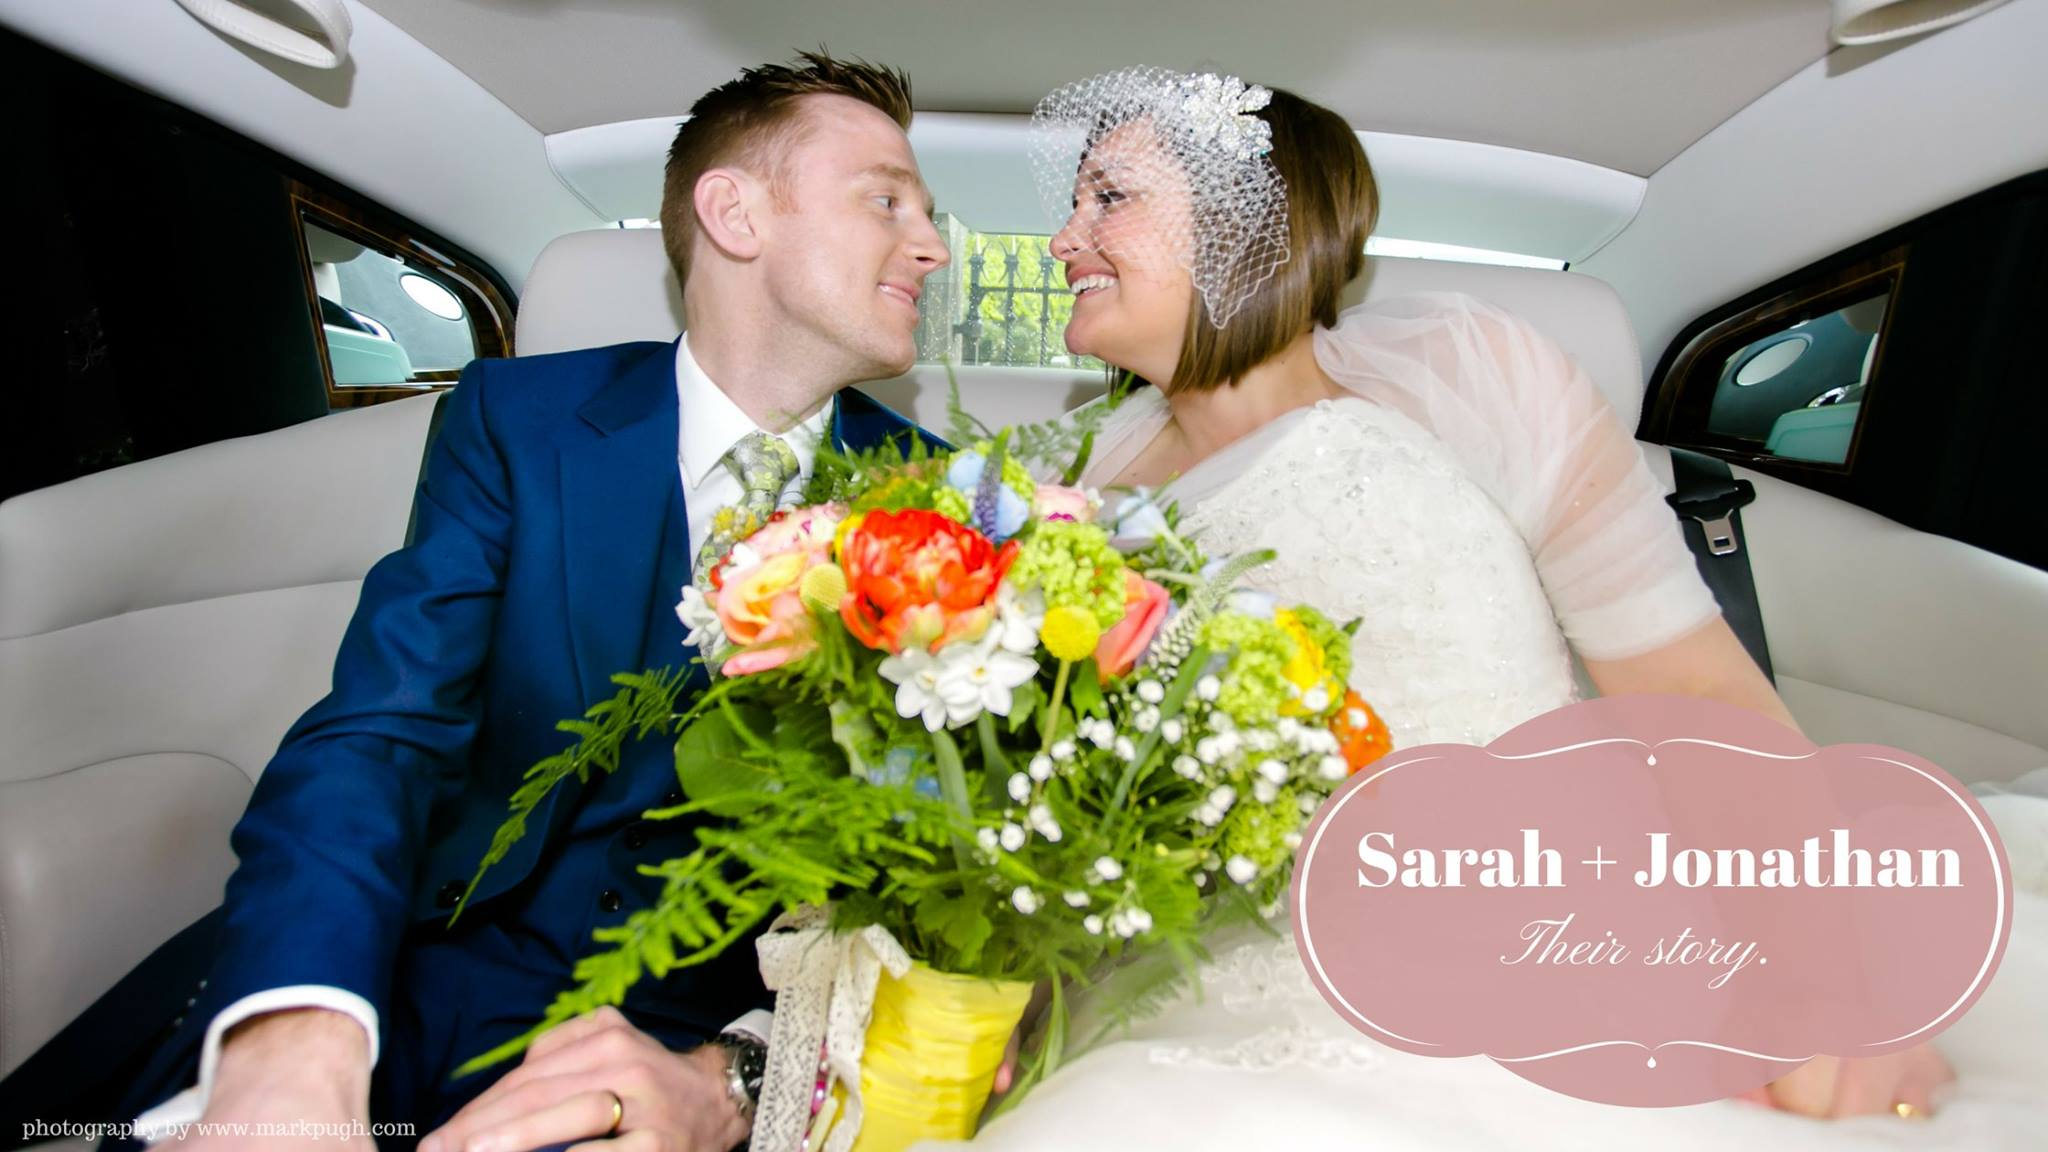 Sarah and Jonathan - wedding photography at the Carriage Hall, Plumtree by Mark Pugh